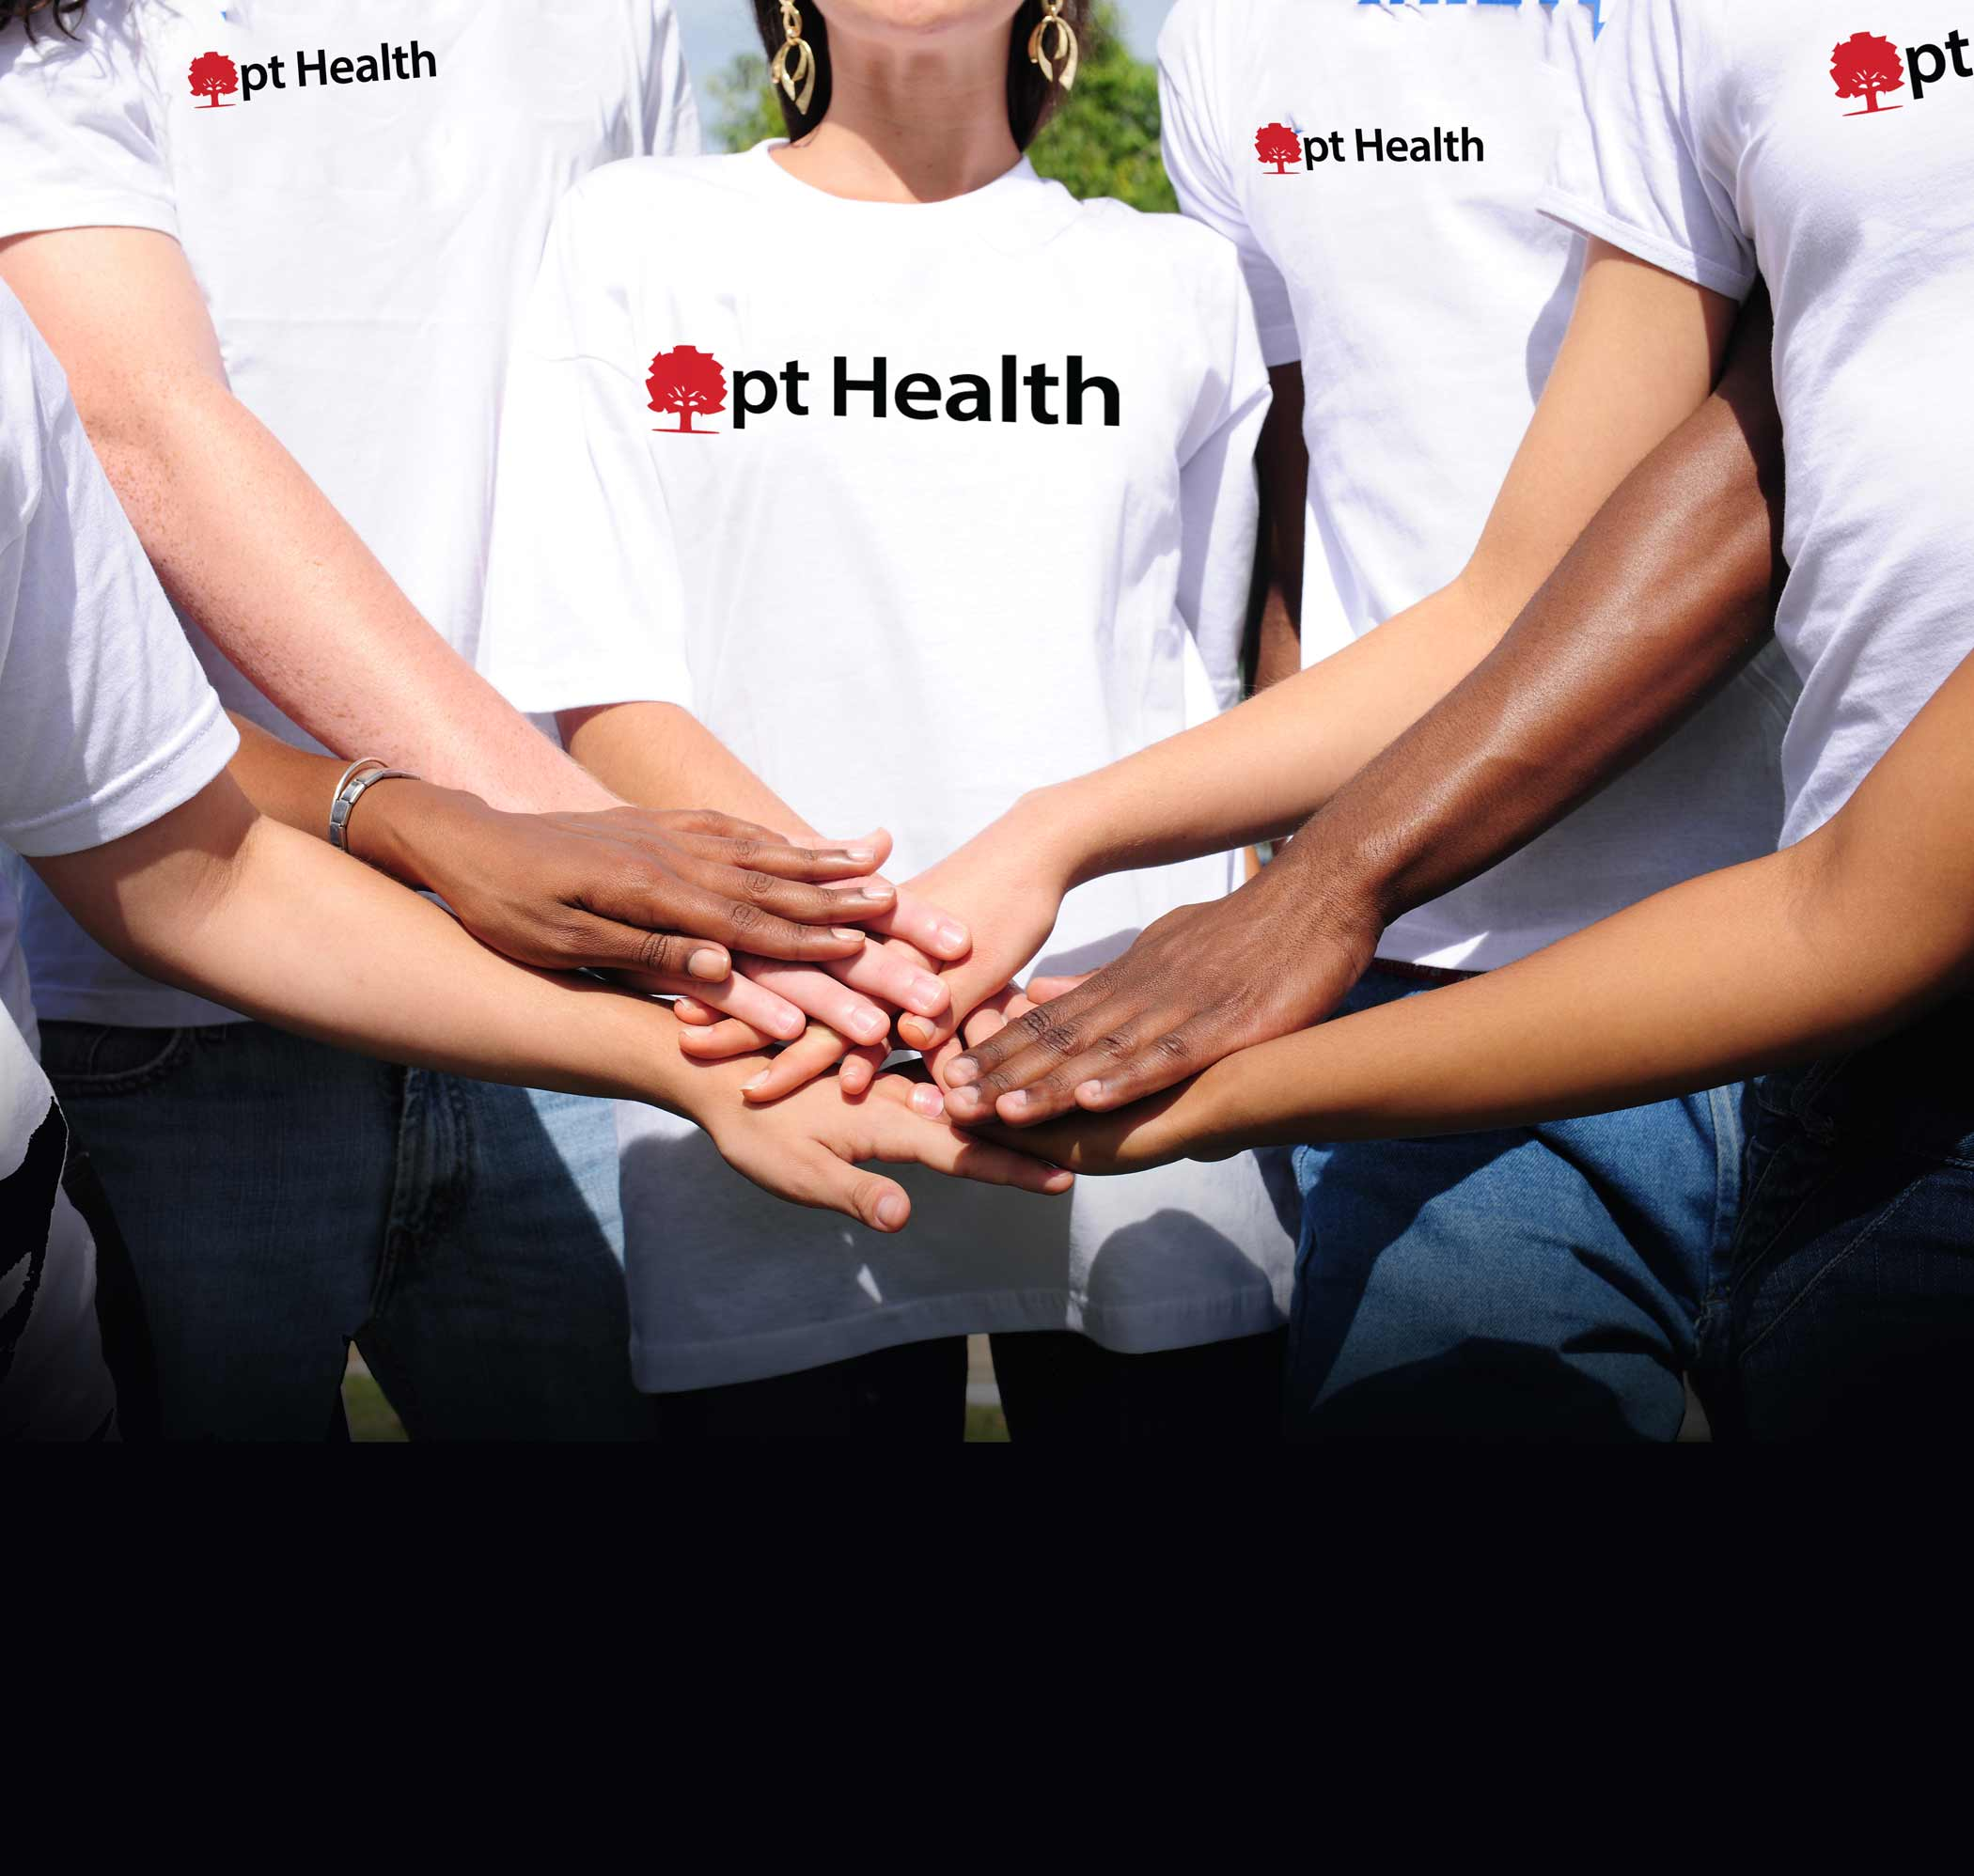 pt Health team members with hands all in